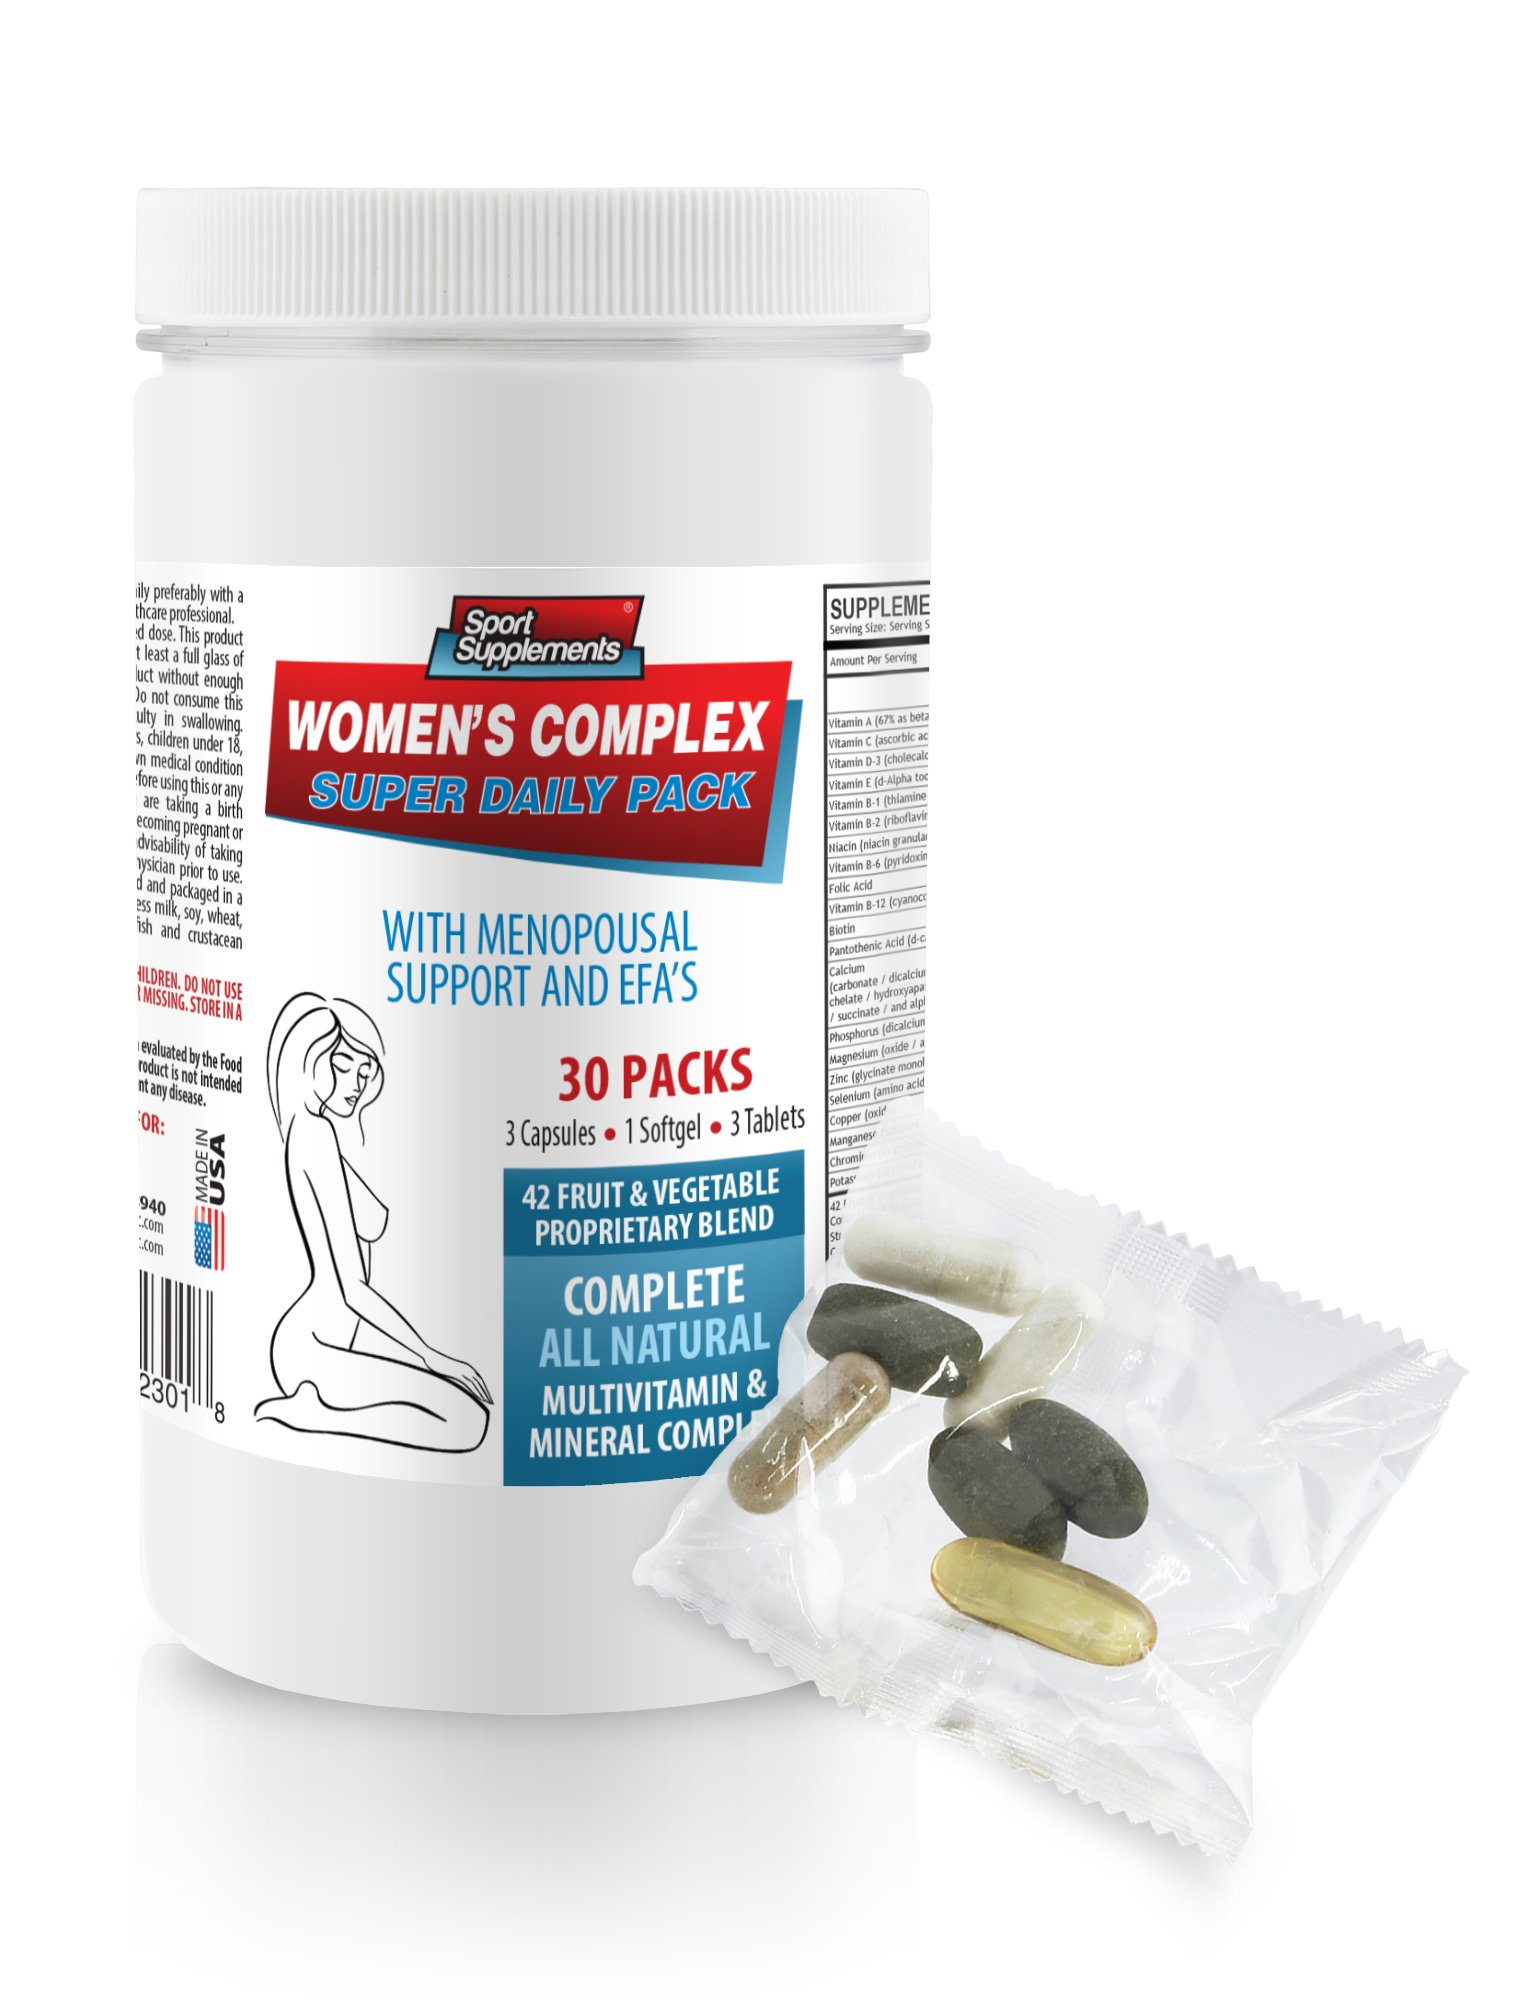 Female Enhancement Natural Booster - Women's Complex - Super Daily Pack - Wild yam and Black Cohosh - 1 Can 30 Packs (210 Pills)